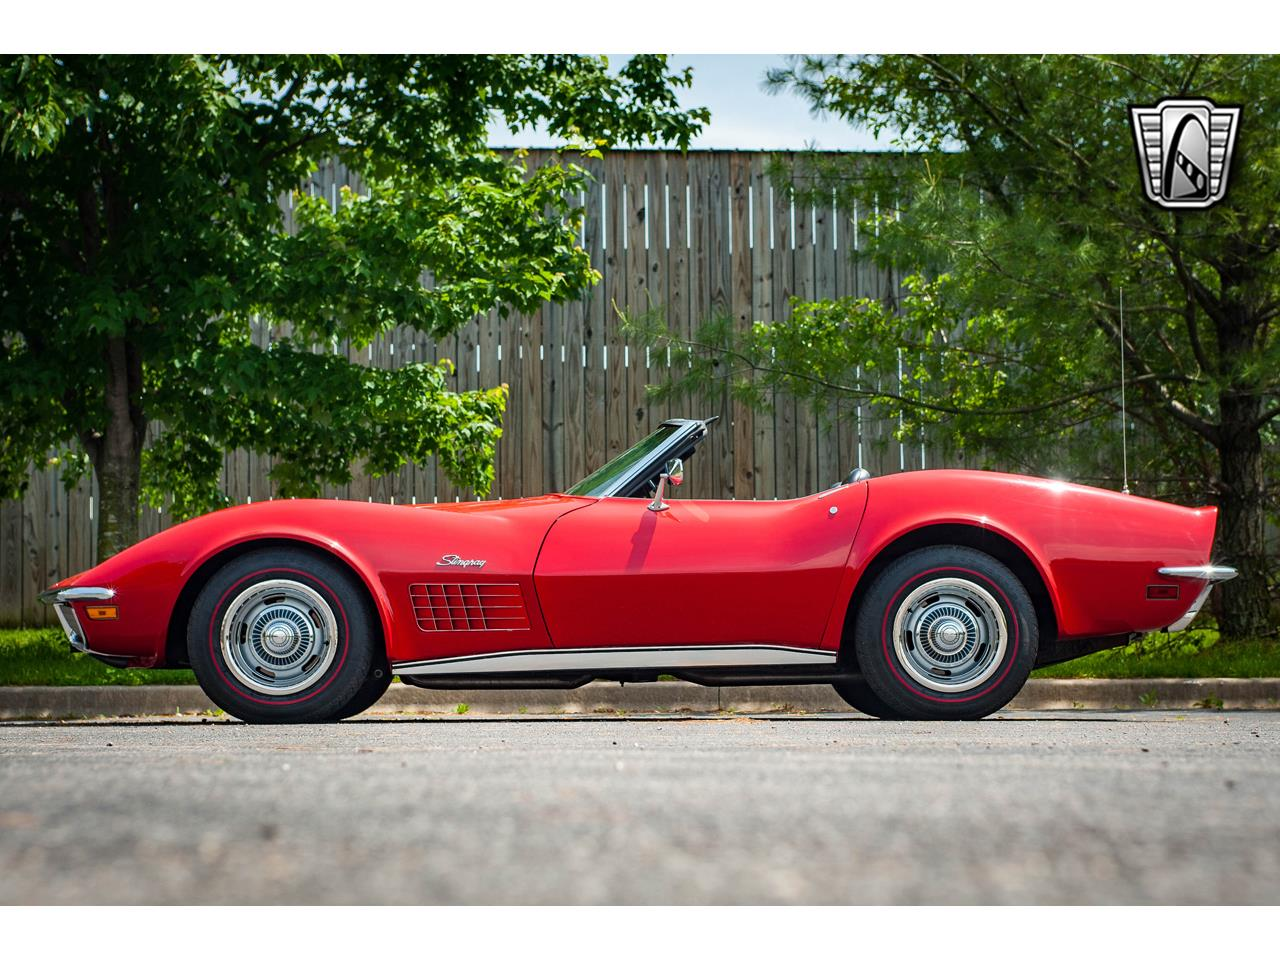 Large Picture of Classic '71 Corvette located in O'Fallon Illinois - $40,500.00 Offered by Gateway Classic Cars - St. Louis - QB9M